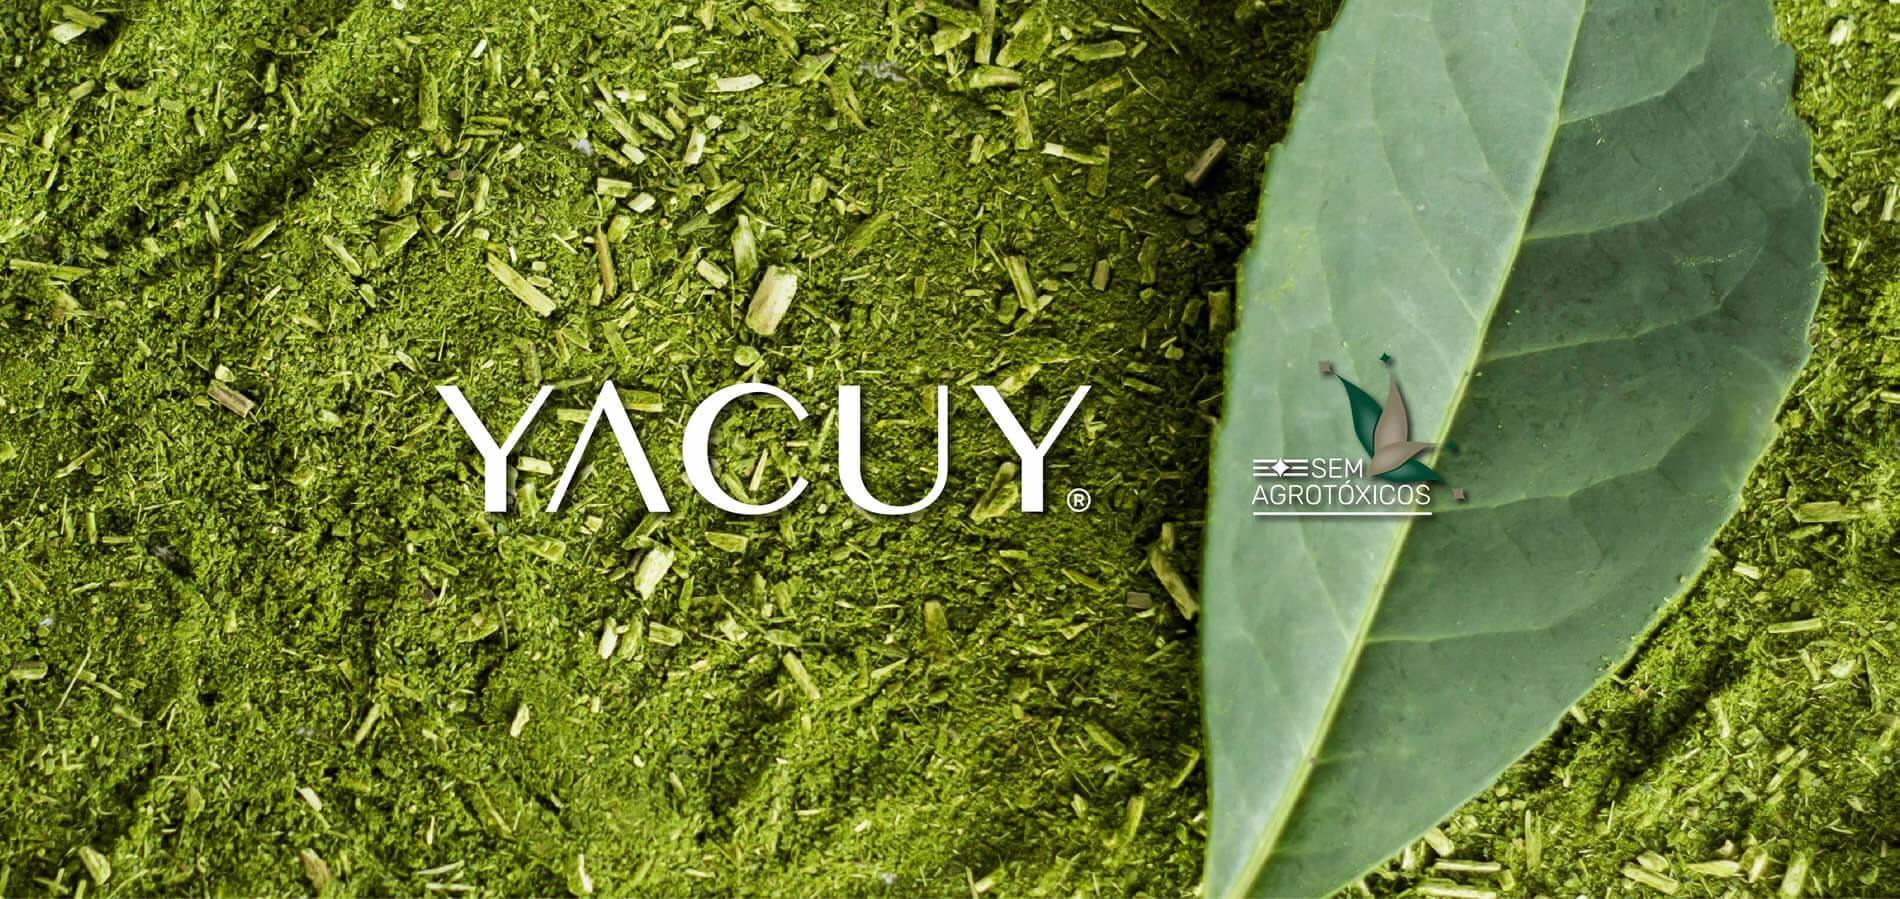 Yacuy - No Agrochemicals